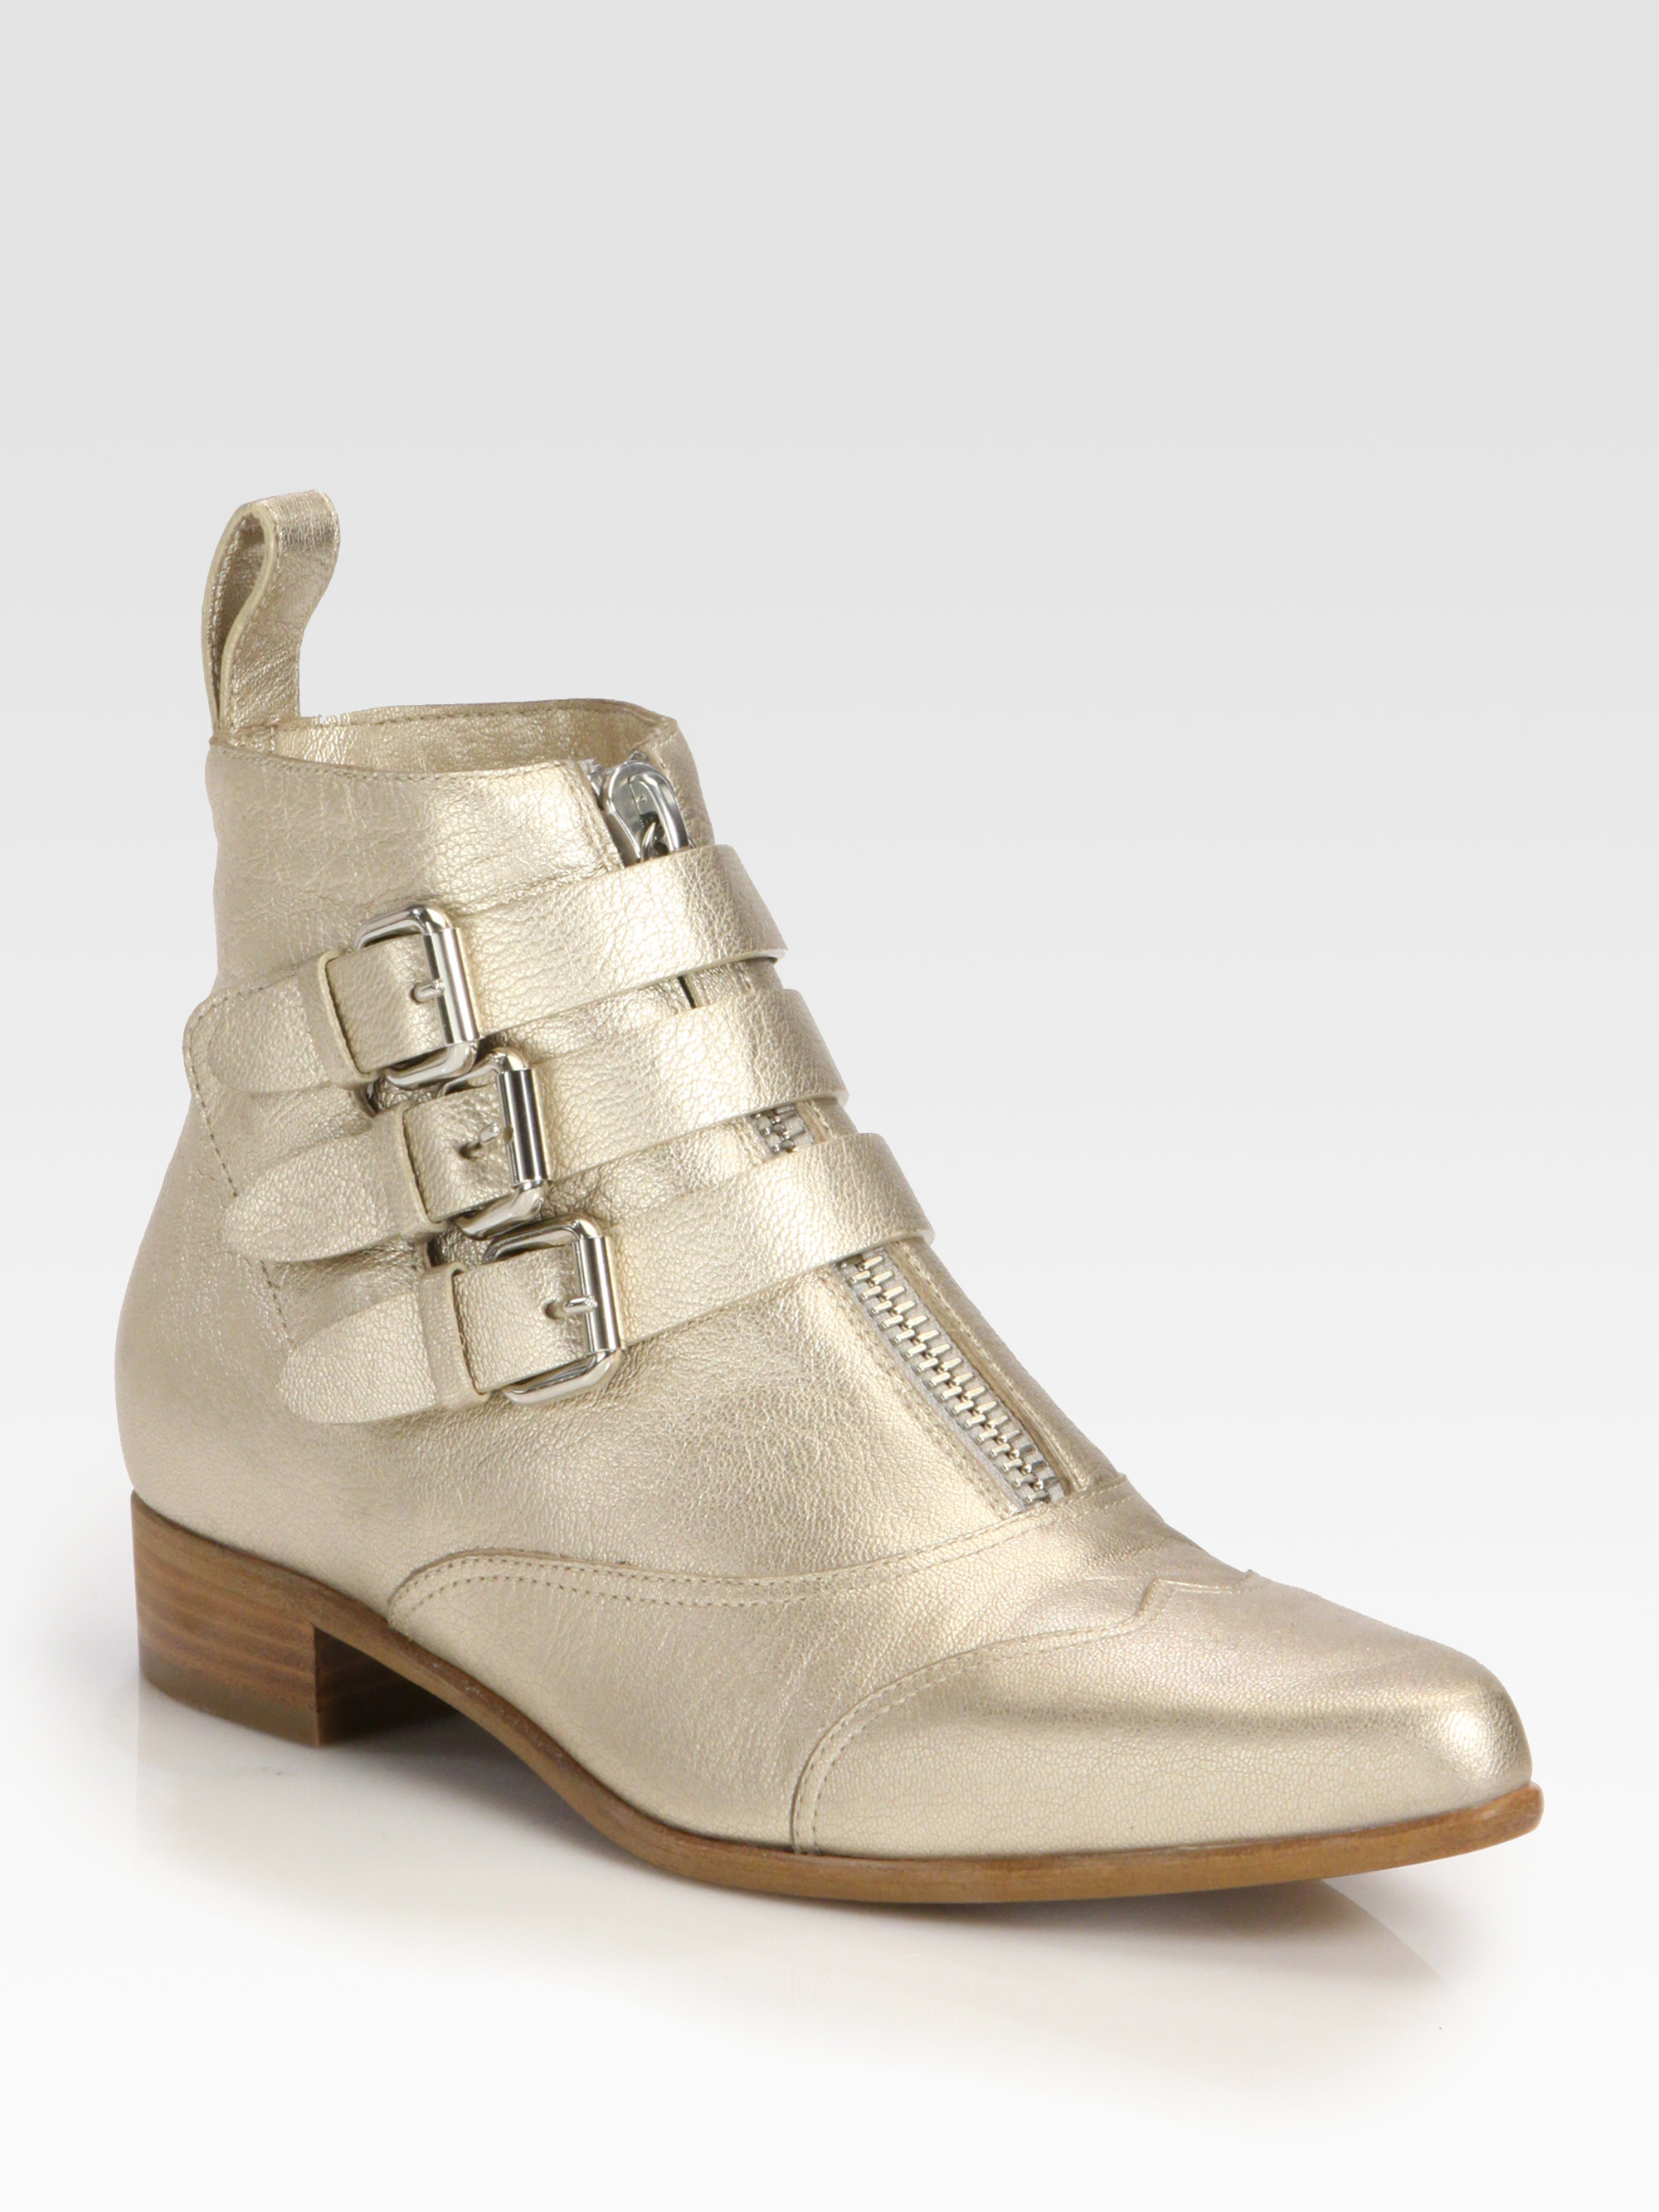 simmons early metallic leather ankle boots in gold